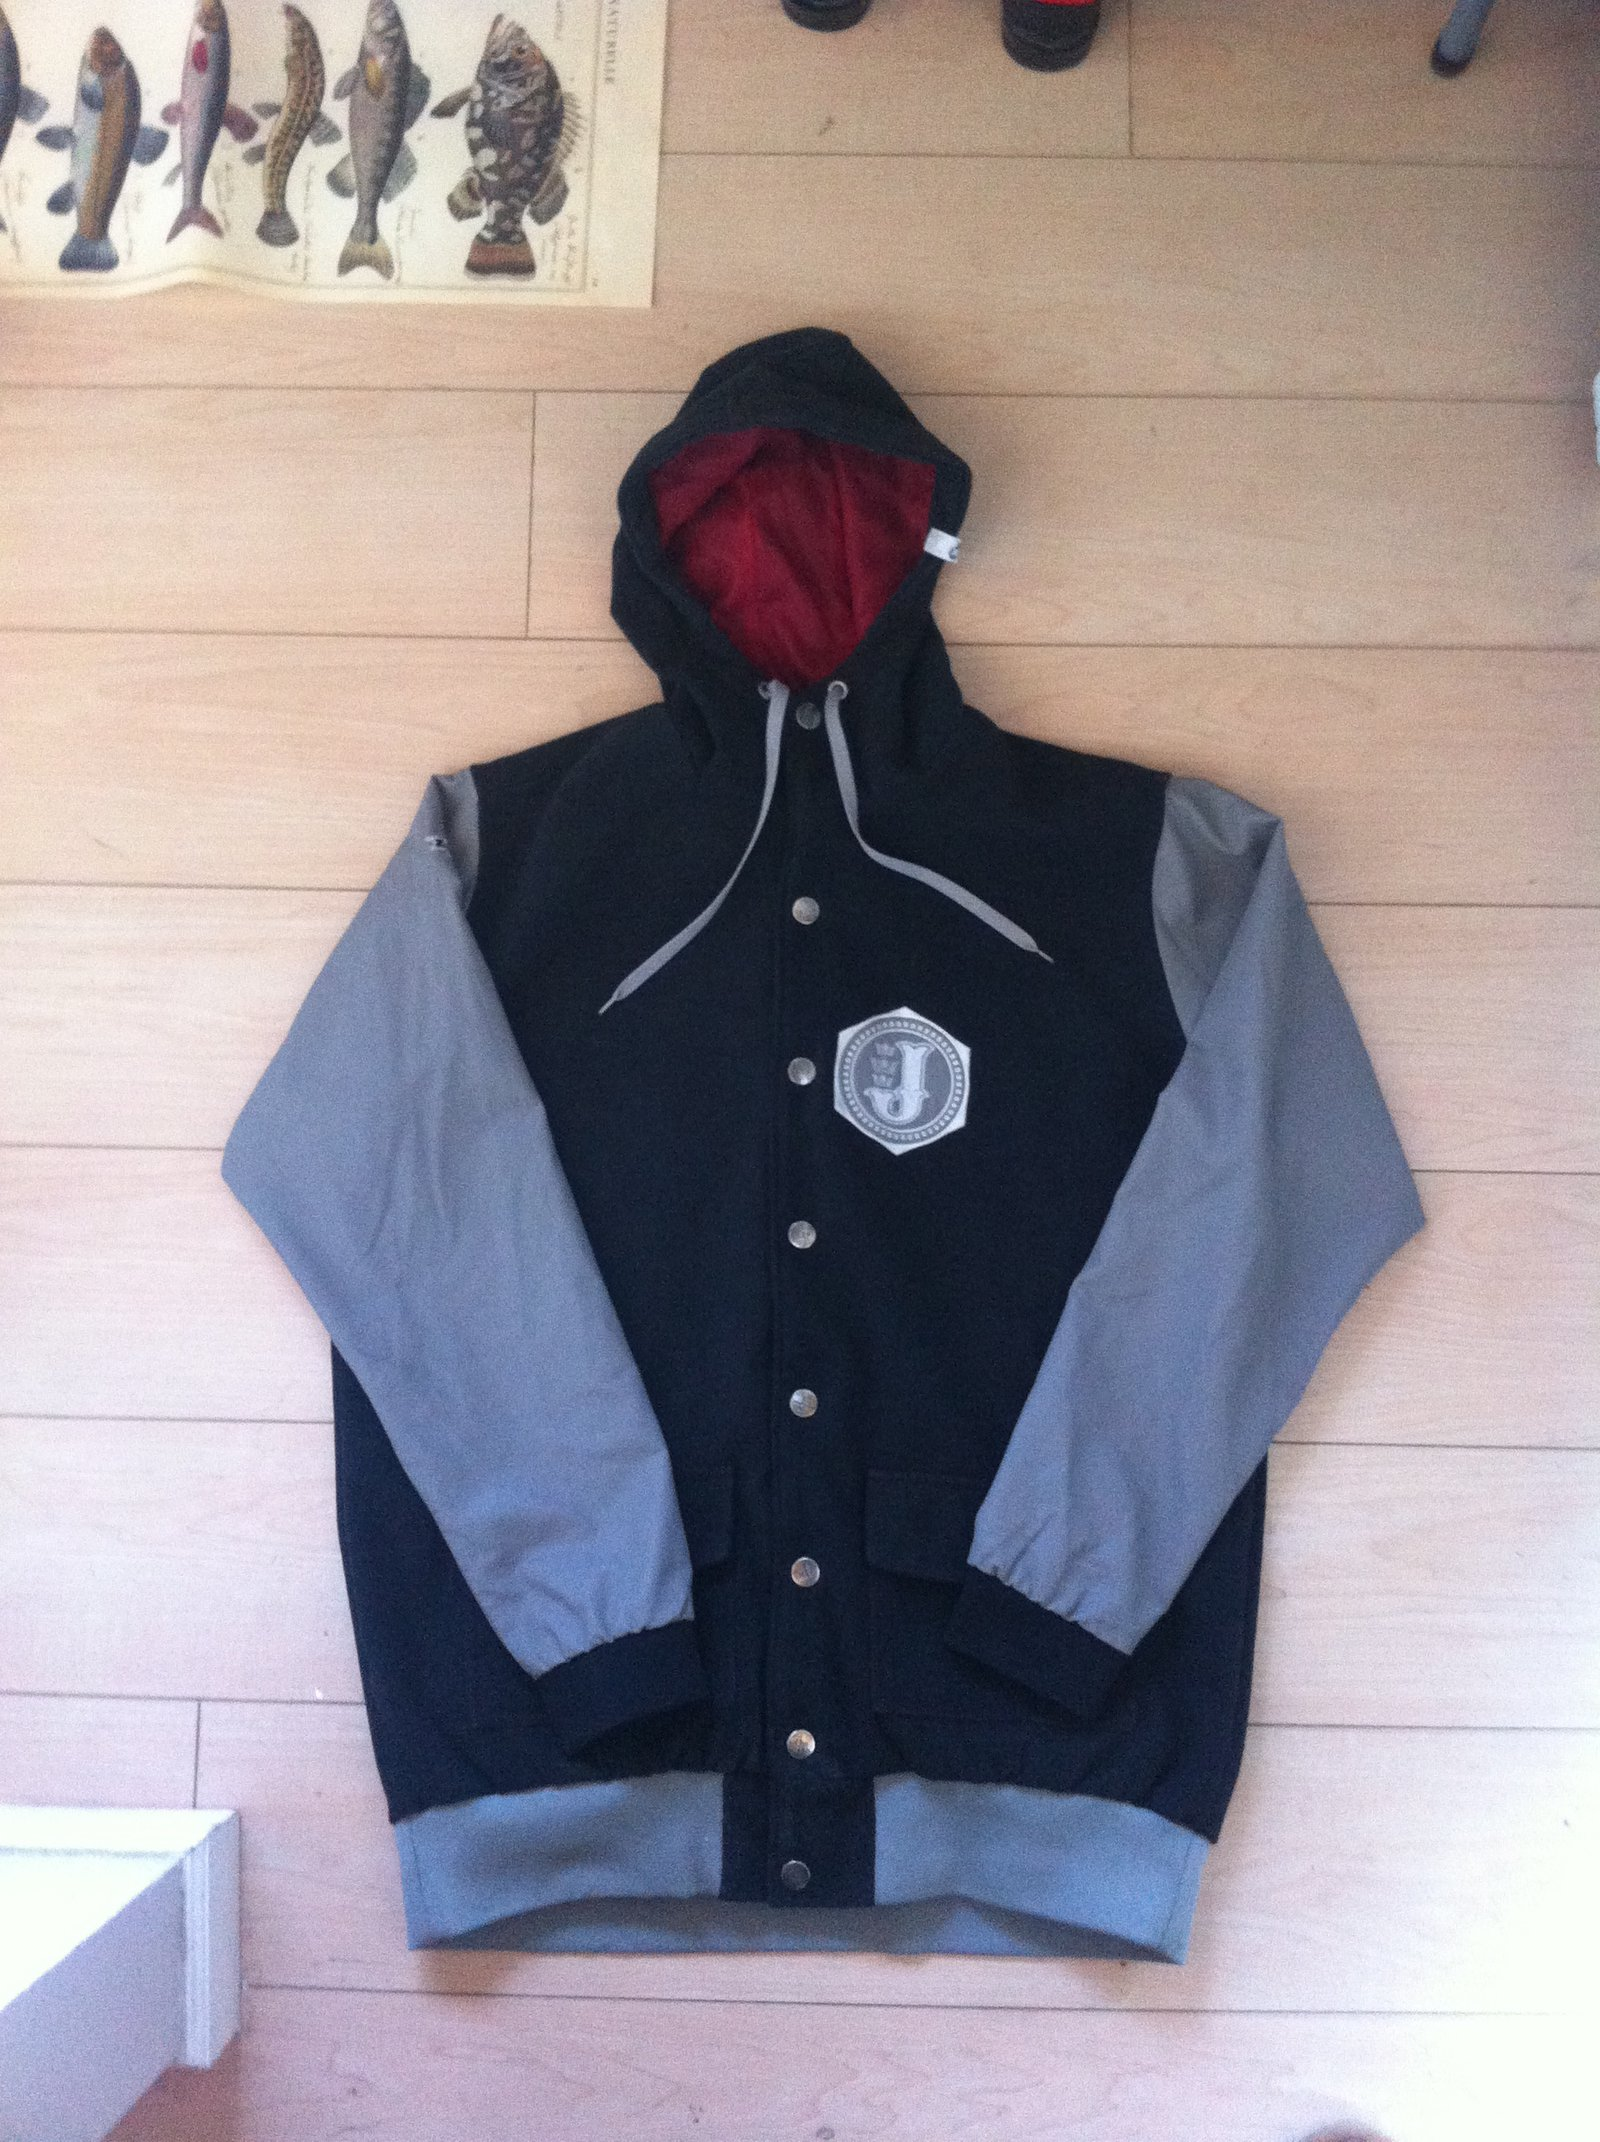 Jiberish Acadamy Jacket 2XL $60